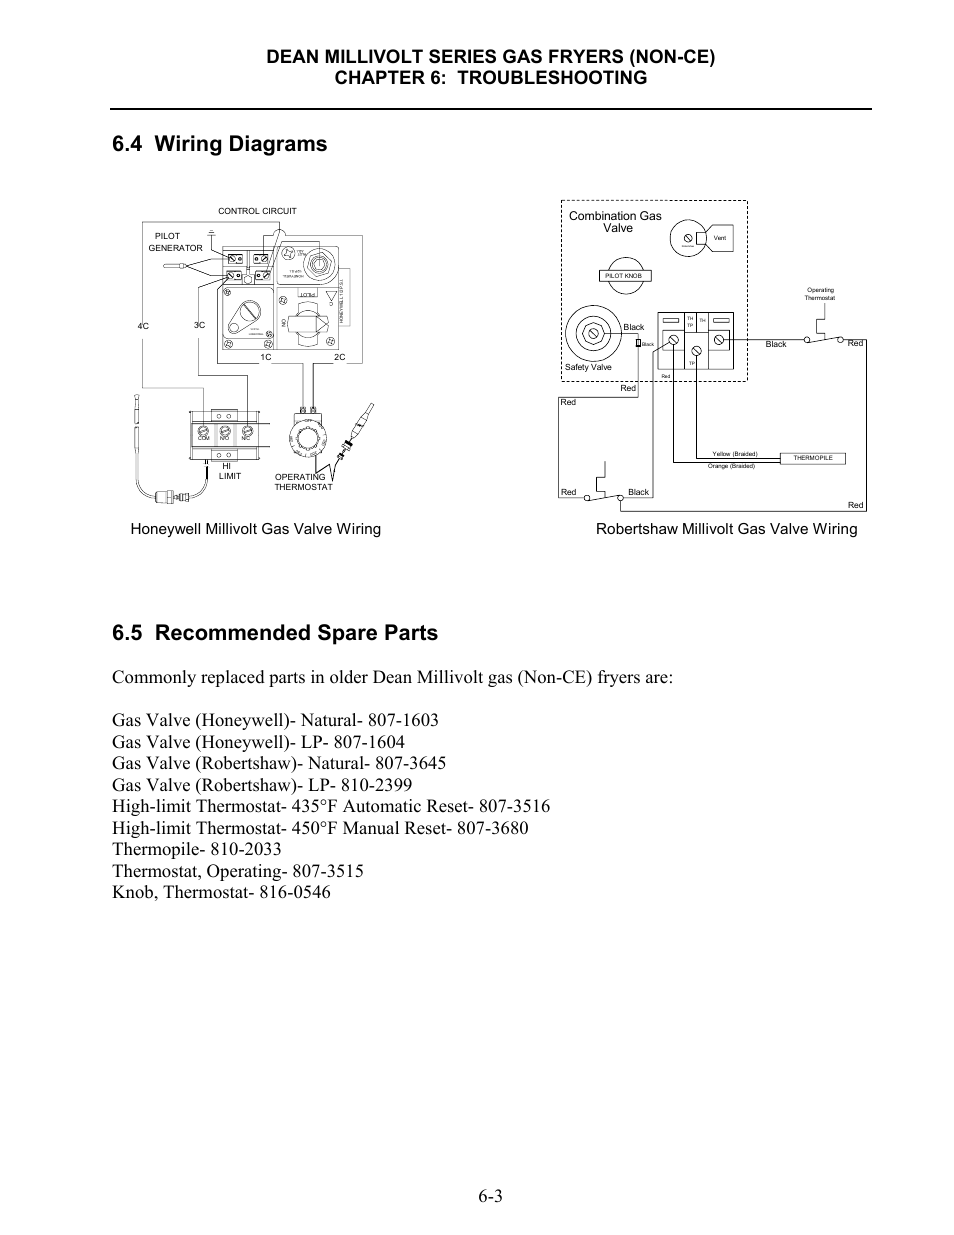 hight resolution of 4 wiring diagrams 5 recommended spare parts honeywell millivolt robertshaw gas valves wiring diagram control